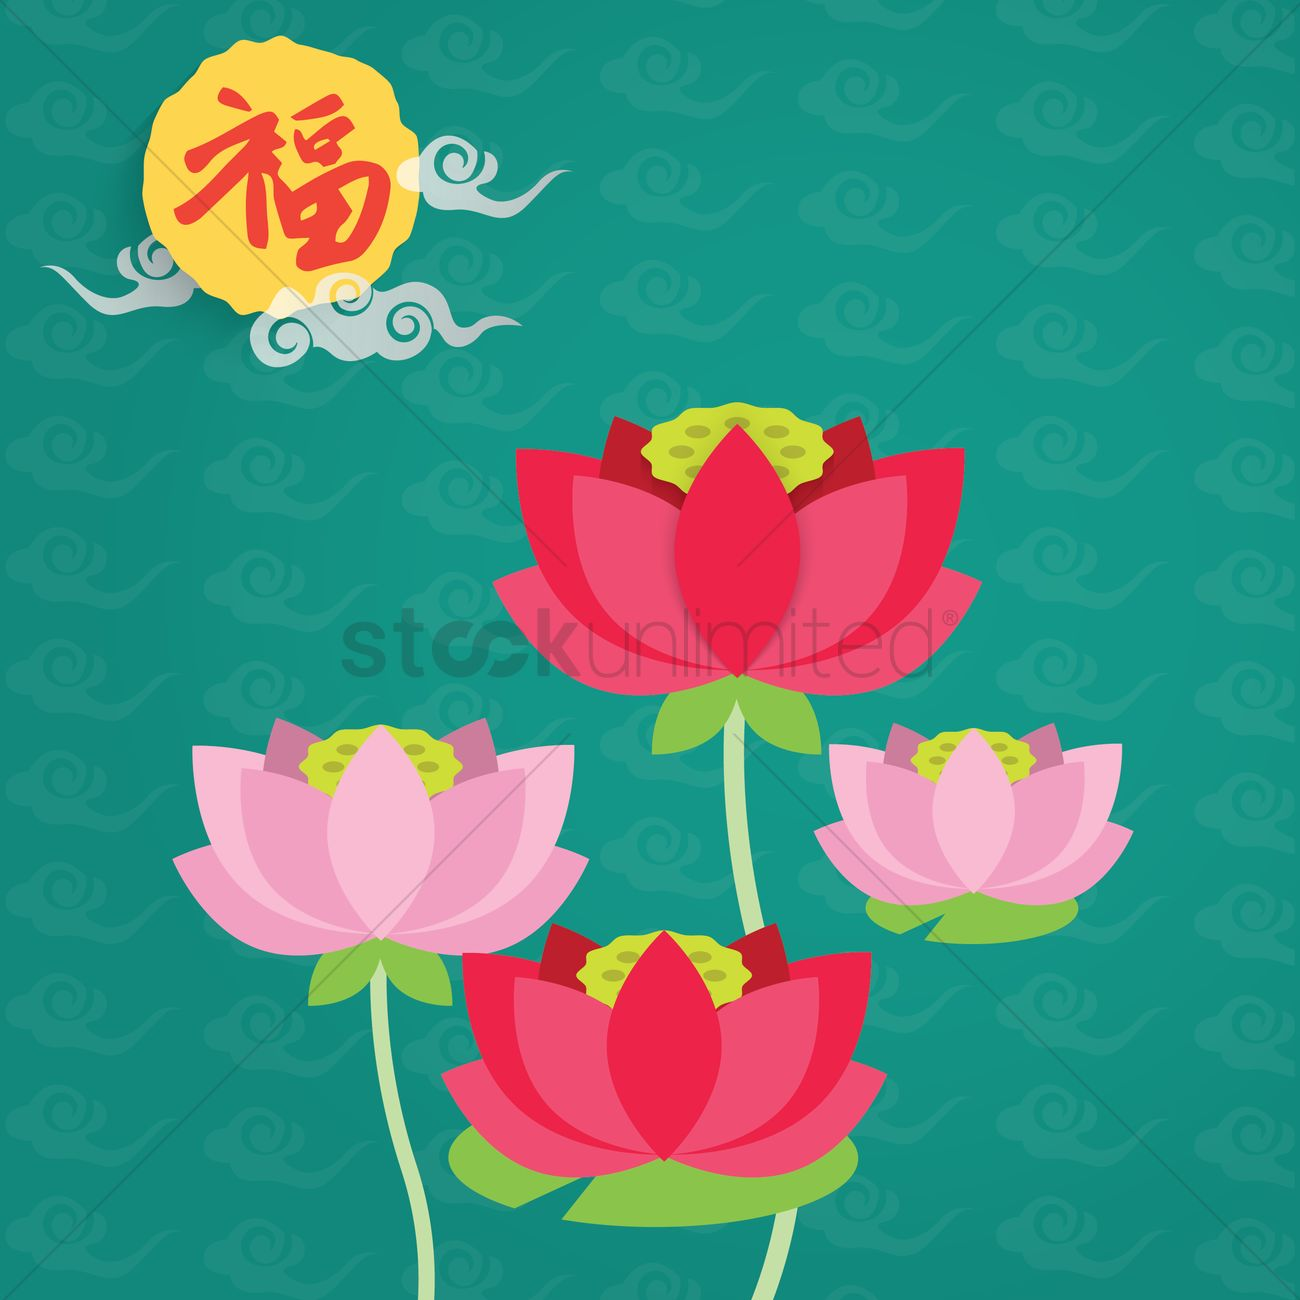 Chinese New Year Lotus Greeting Design Vector Image 1494004